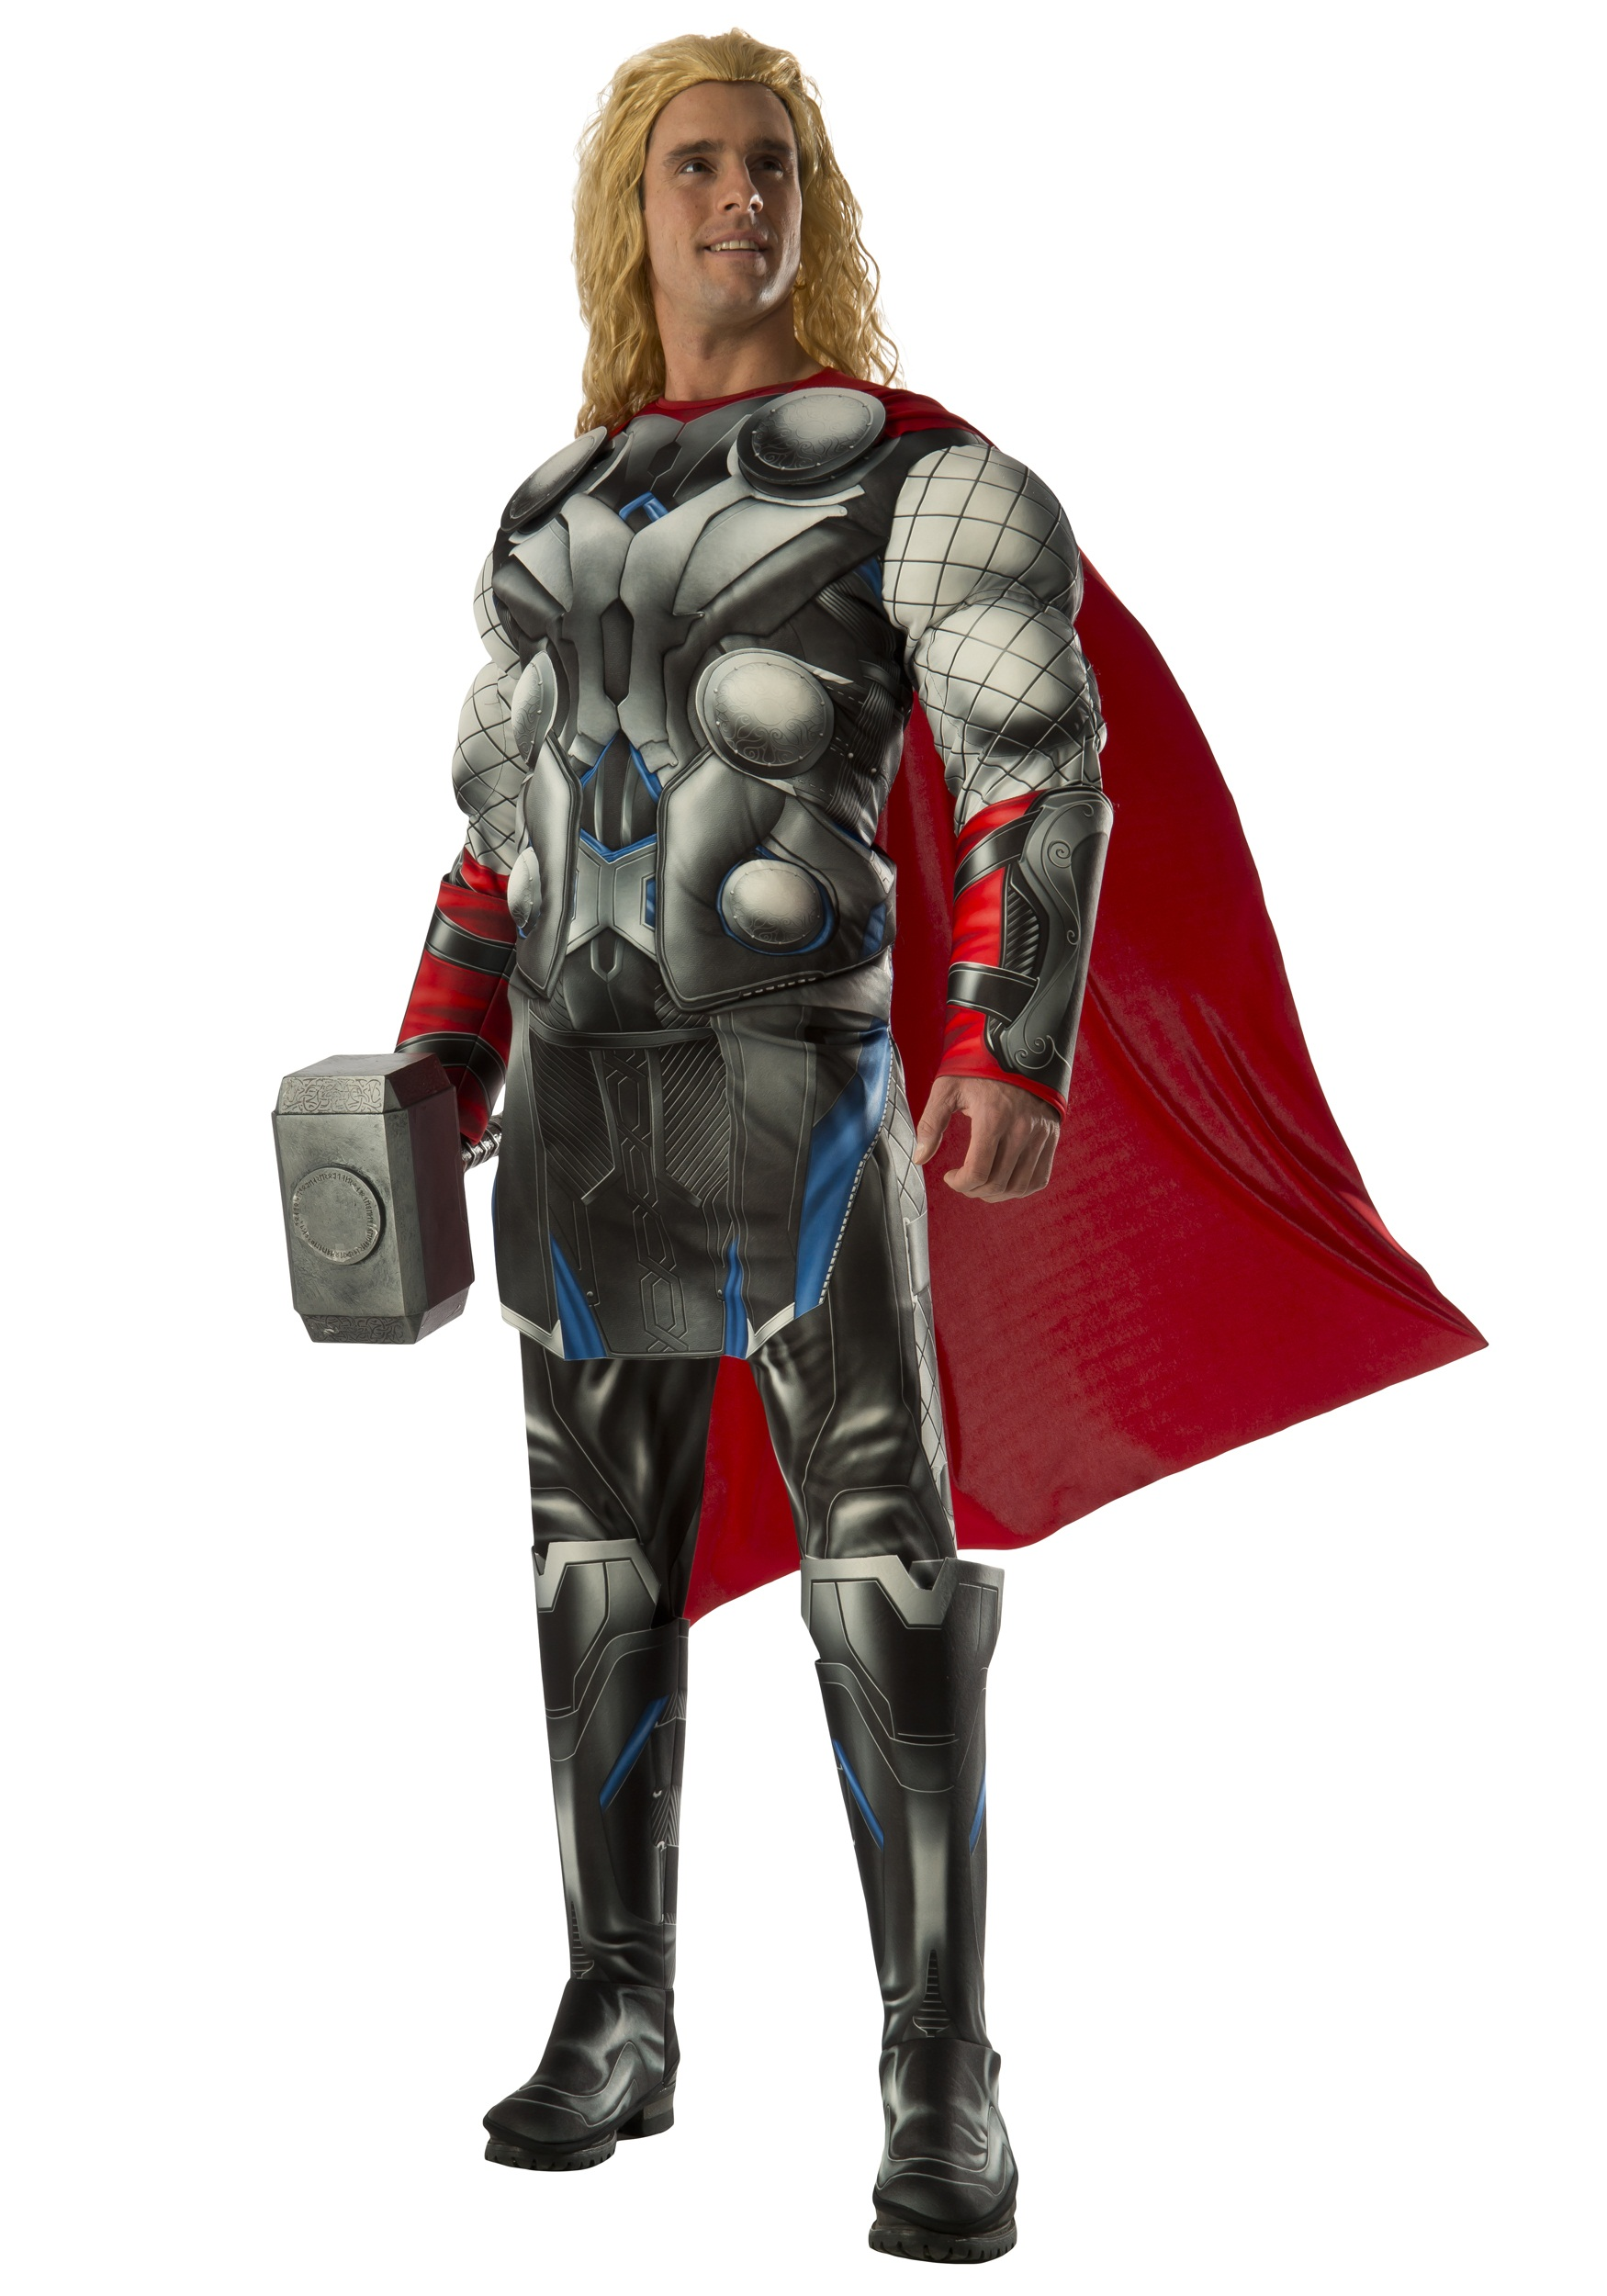 Adult Deluxe Thor Avengers 2 Costume